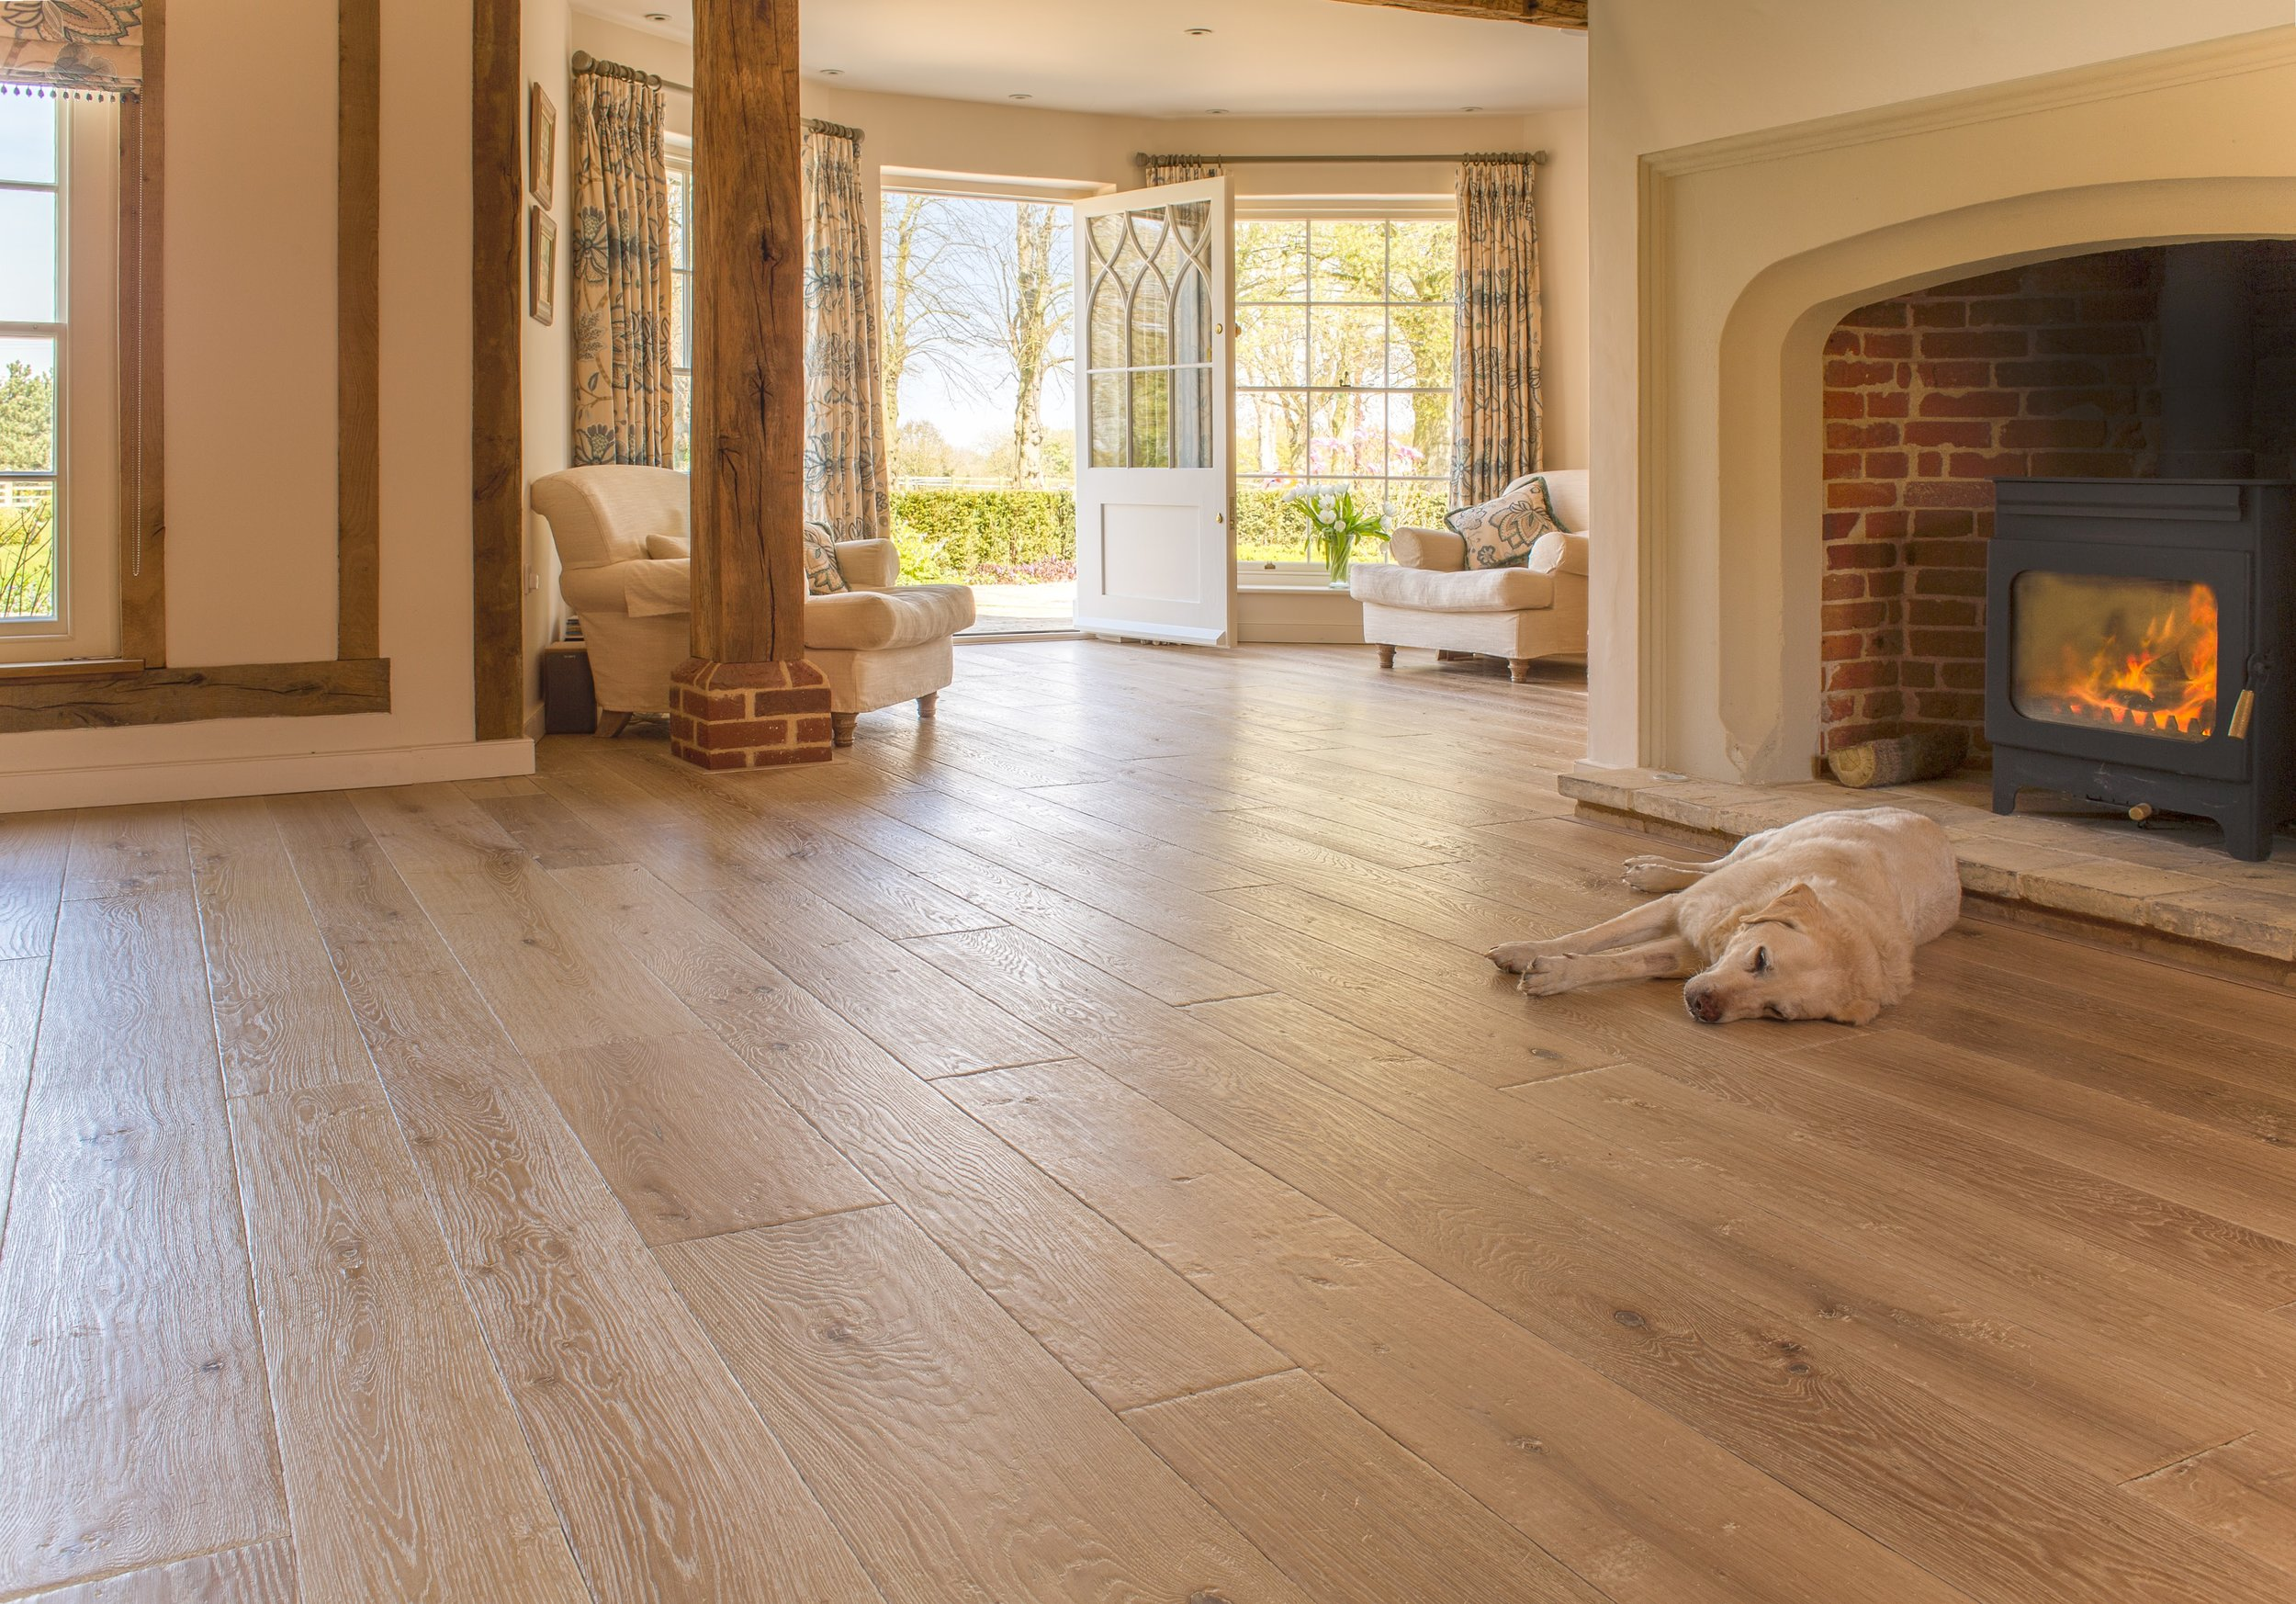 Wide oak floors